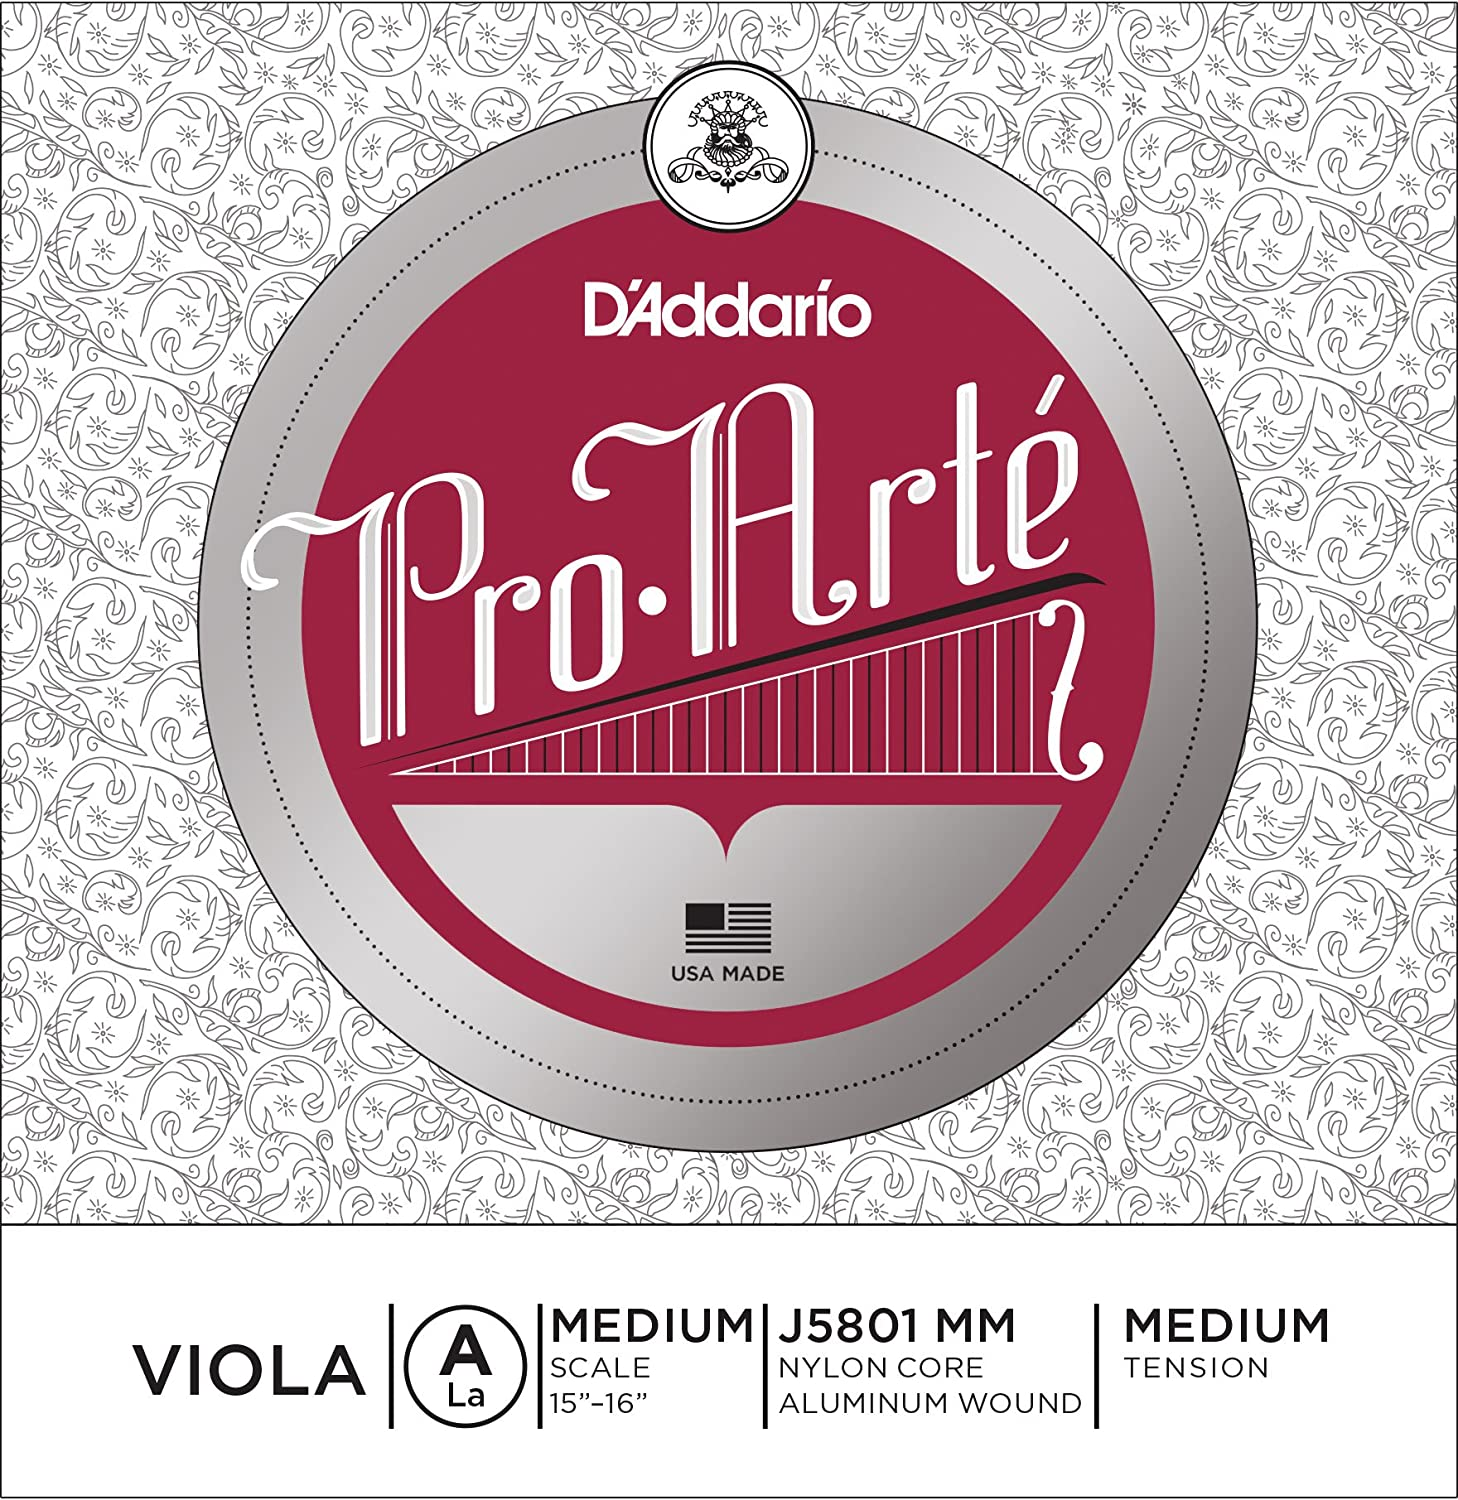 D'Addario Pro-Arte Viola Single A String, Short Scale, Medium Tension D'Addario &Co. Inc J5801 SM